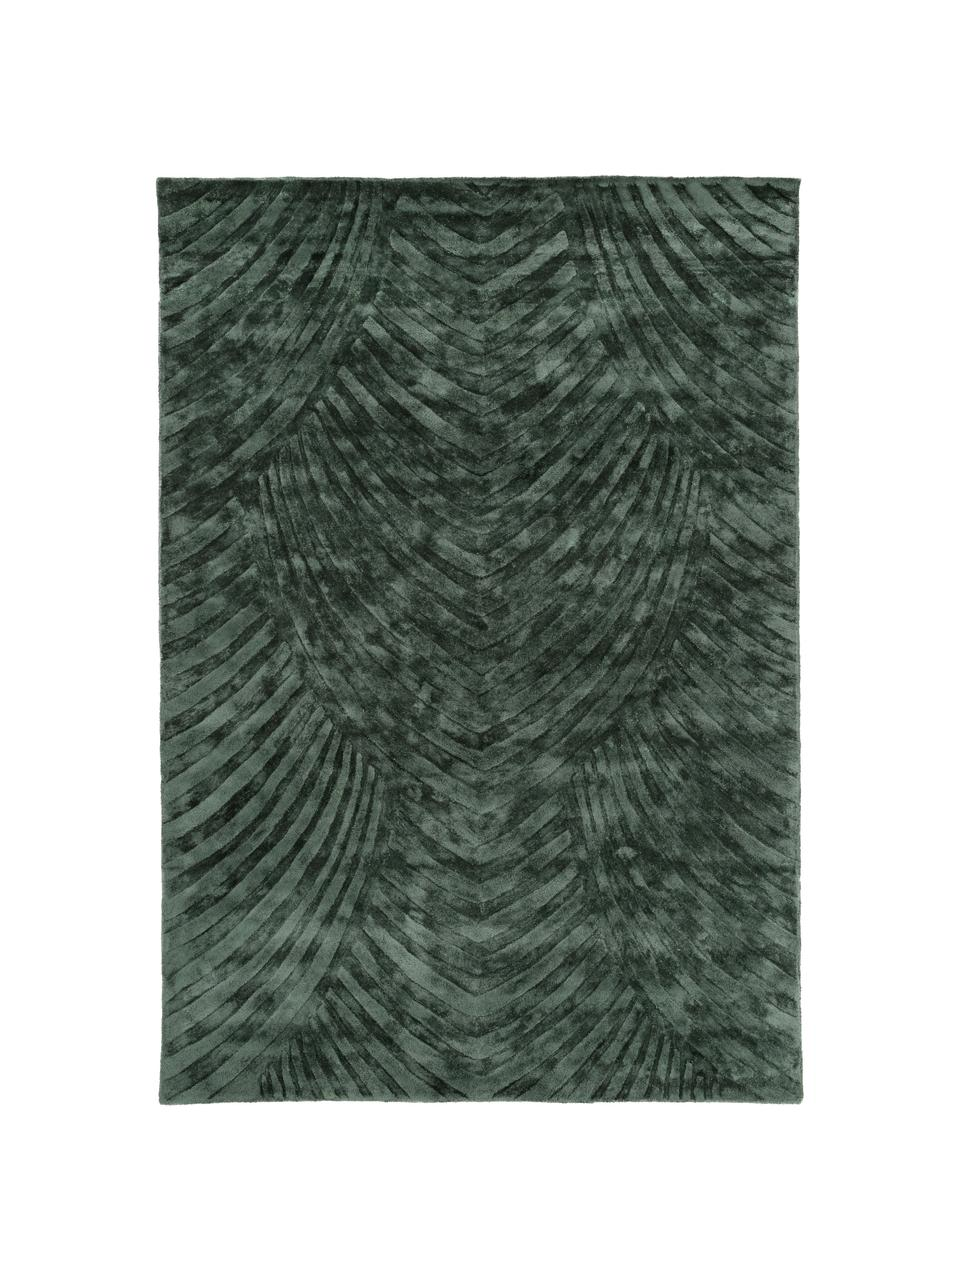 Tappeto in viscosa taftato a mano Bloom, Vello: 100% viscosa, Retro: 100% cotone, Verde scuro, Larg. 160 x Lung. 230 cm (taglia M)